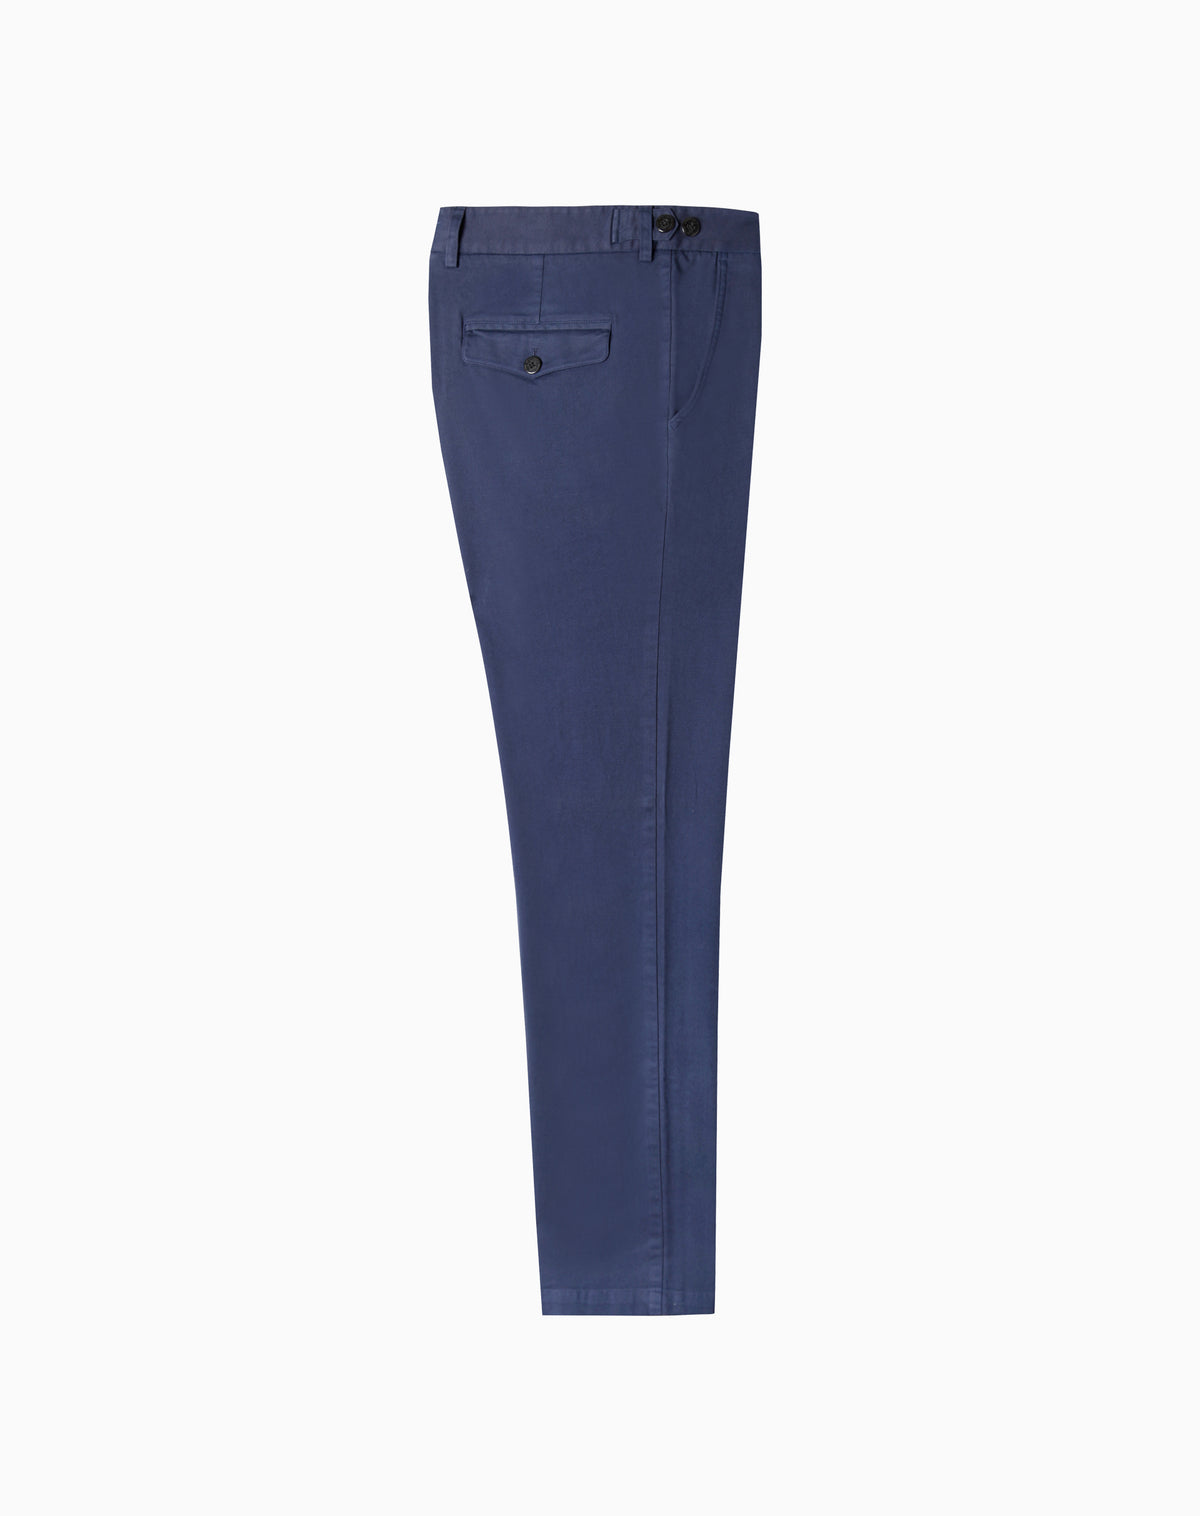 Gates Pant in Navy